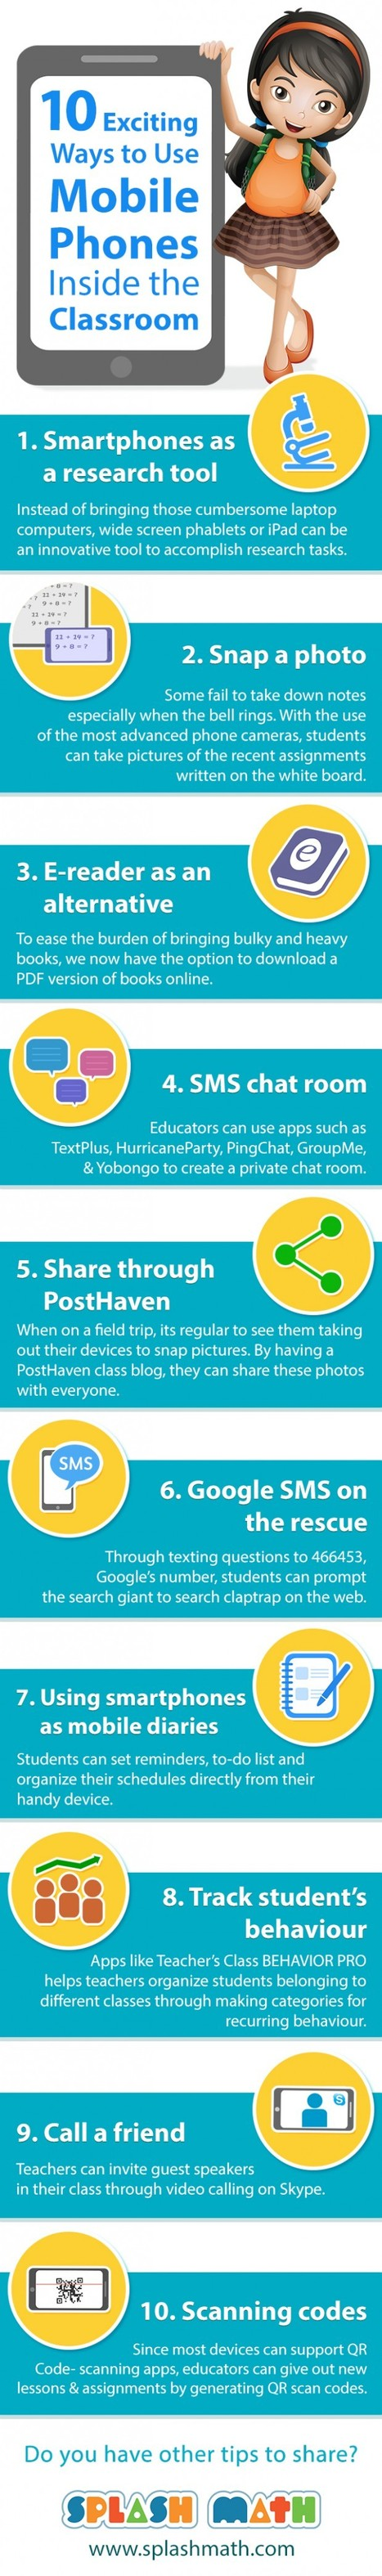 10 Exciting Ways to Use Mobile Phones In the Classroom Infographic | e-Learning Infographics | Web Site of the Week - 3.0 - SD#60 - PRN | Scoop.it